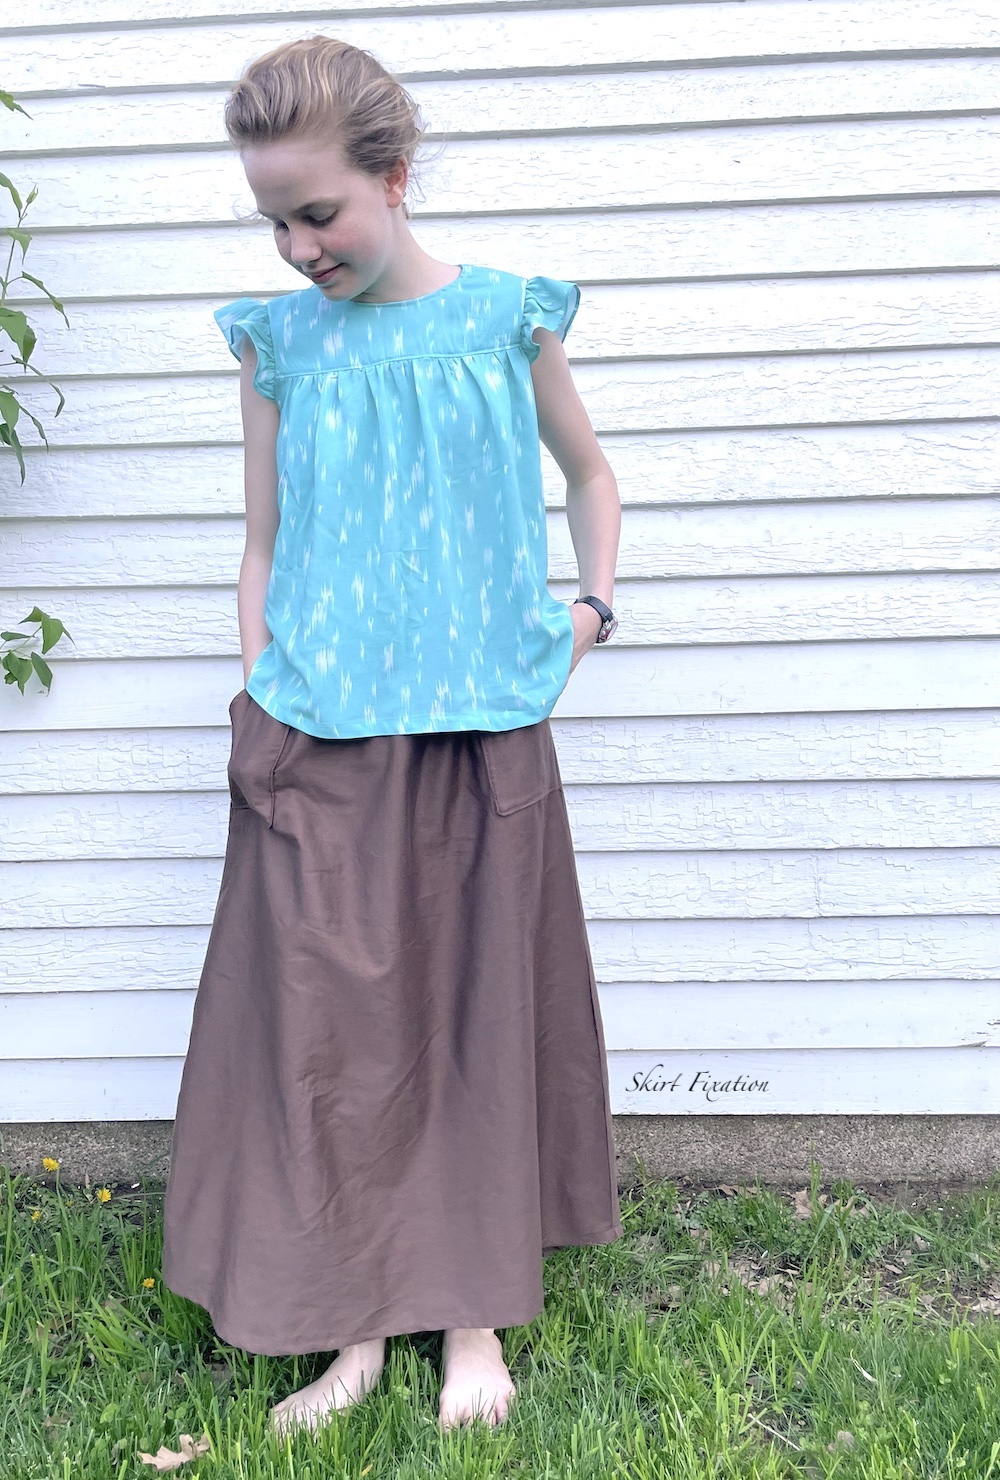 Fragola Top & Dress sewn and reviewed by Skirt Fixation